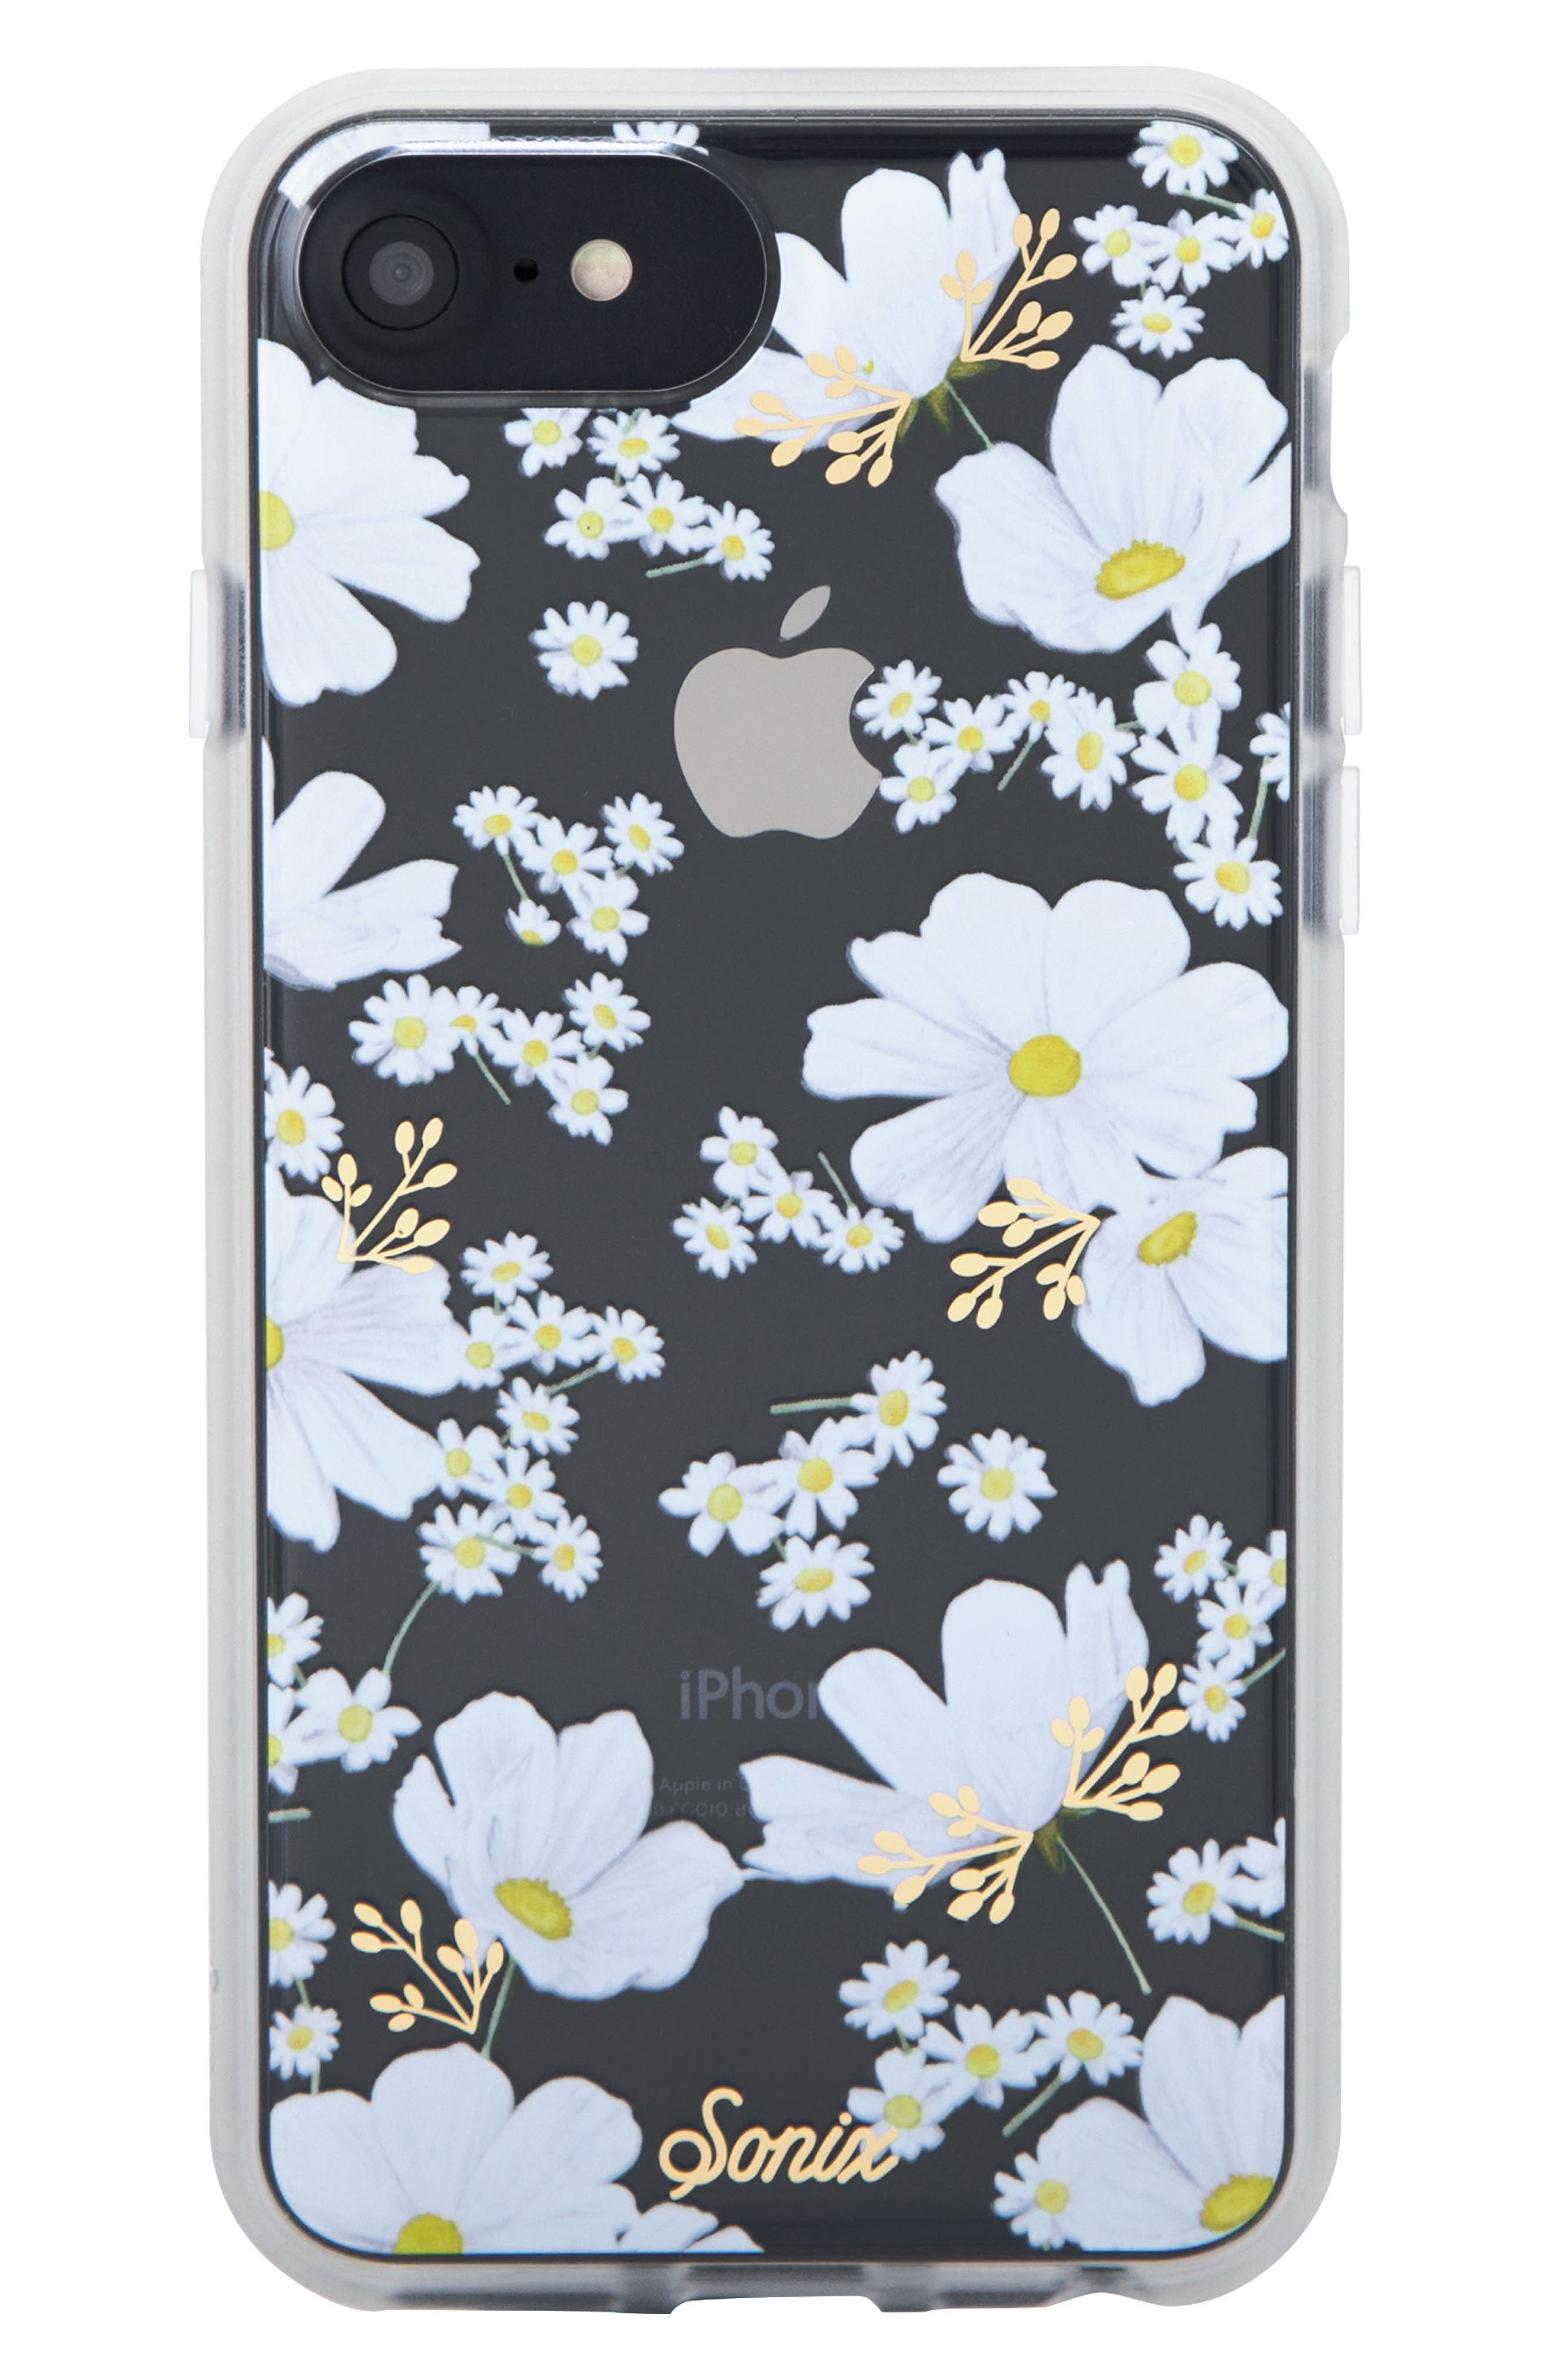 Ditsy Daisy iPhone 6 /6S/7/8 & 6/6s7/8 Plus Case,                             Main thumbnail 1, color,                             White/ Gold